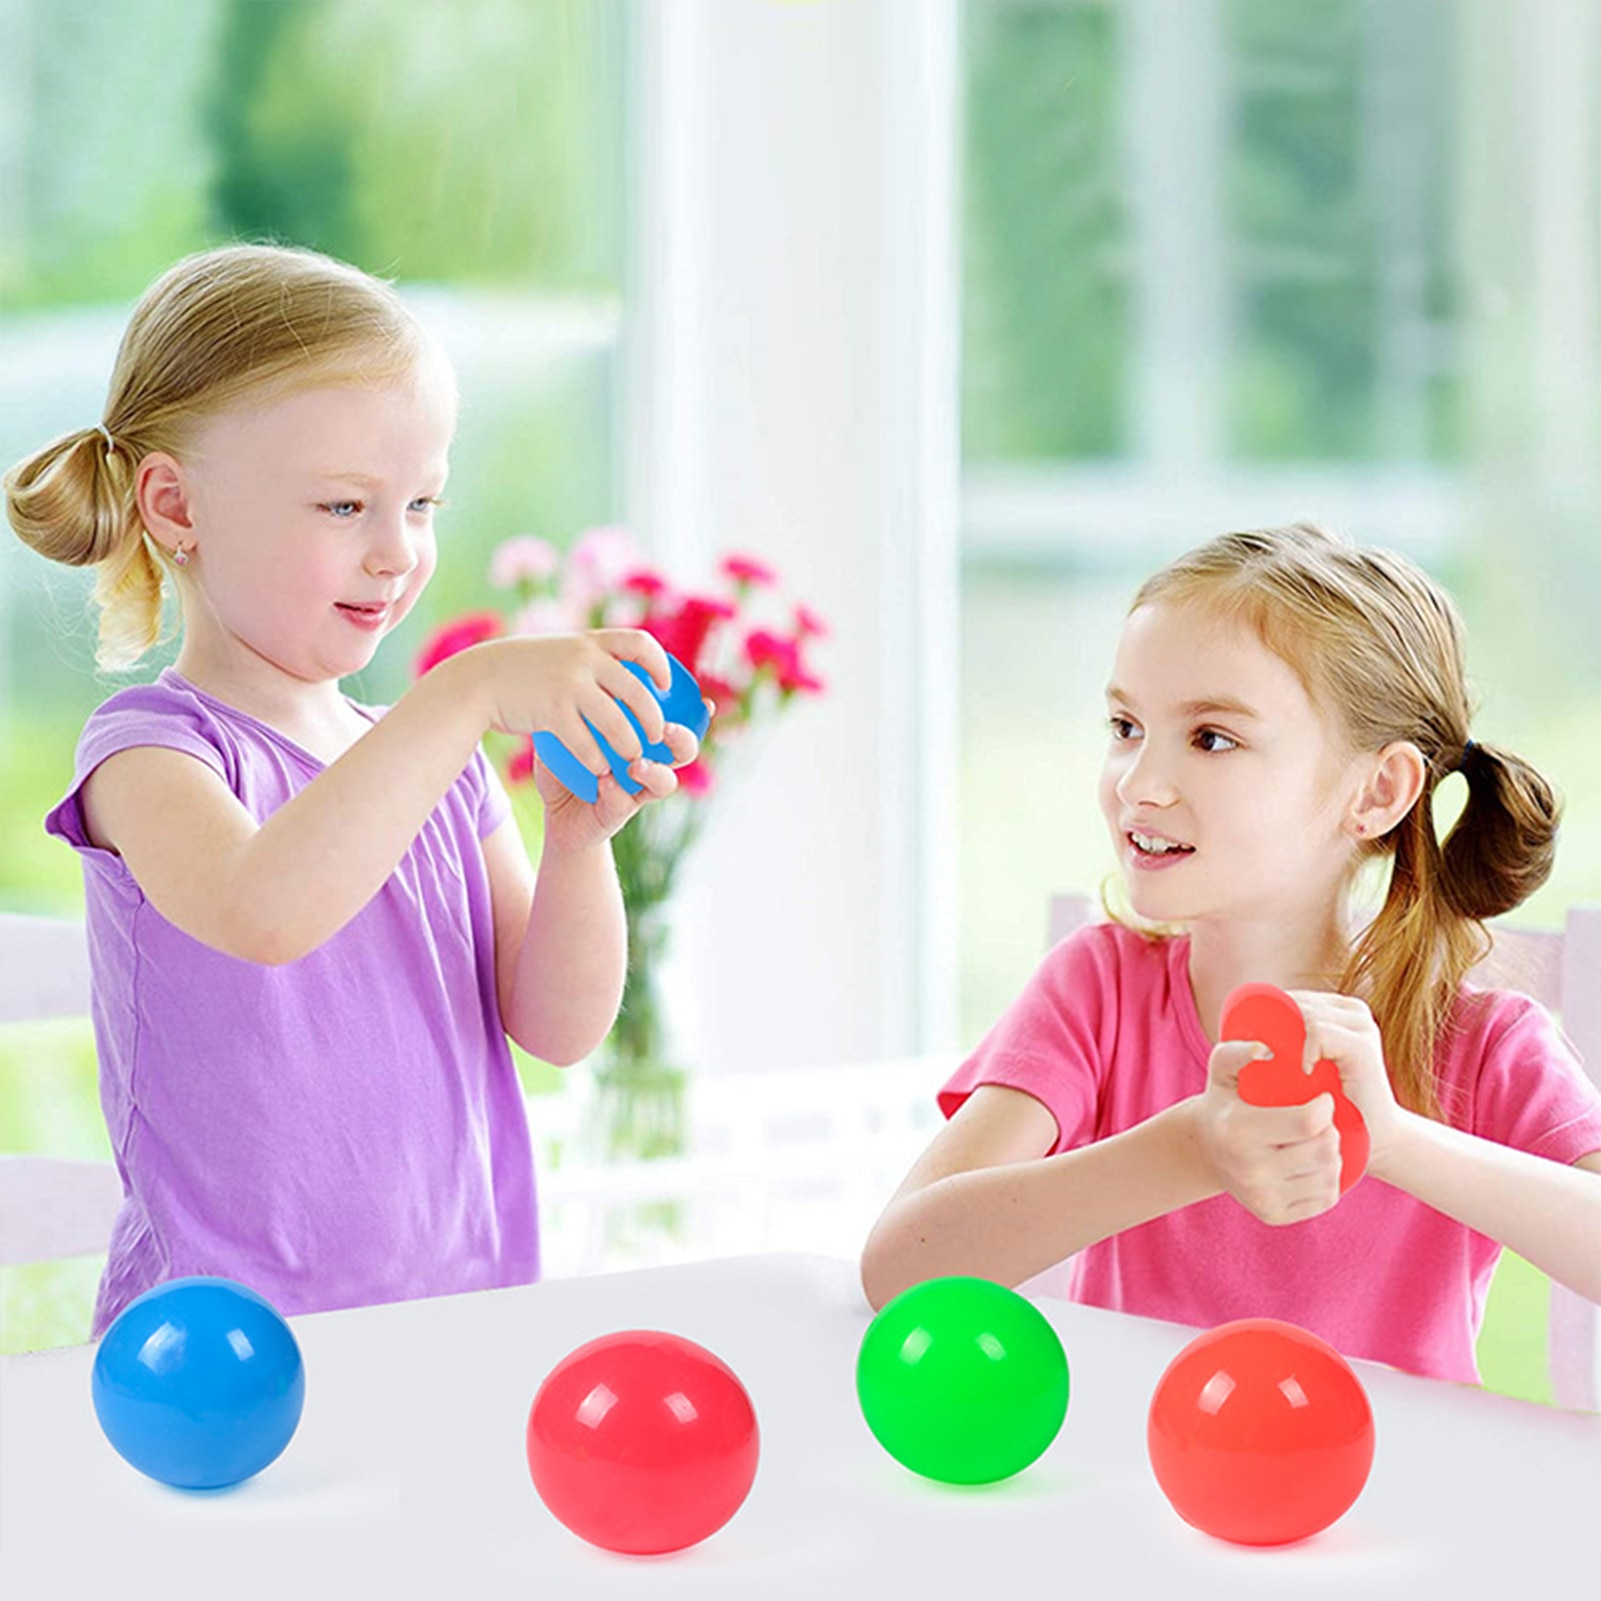 9pc Squeeze Toys Ball Antistress Kids Sticky Decompression Ball For Children Adults Desk Office Anti Stress Boys Girls DH enlarge